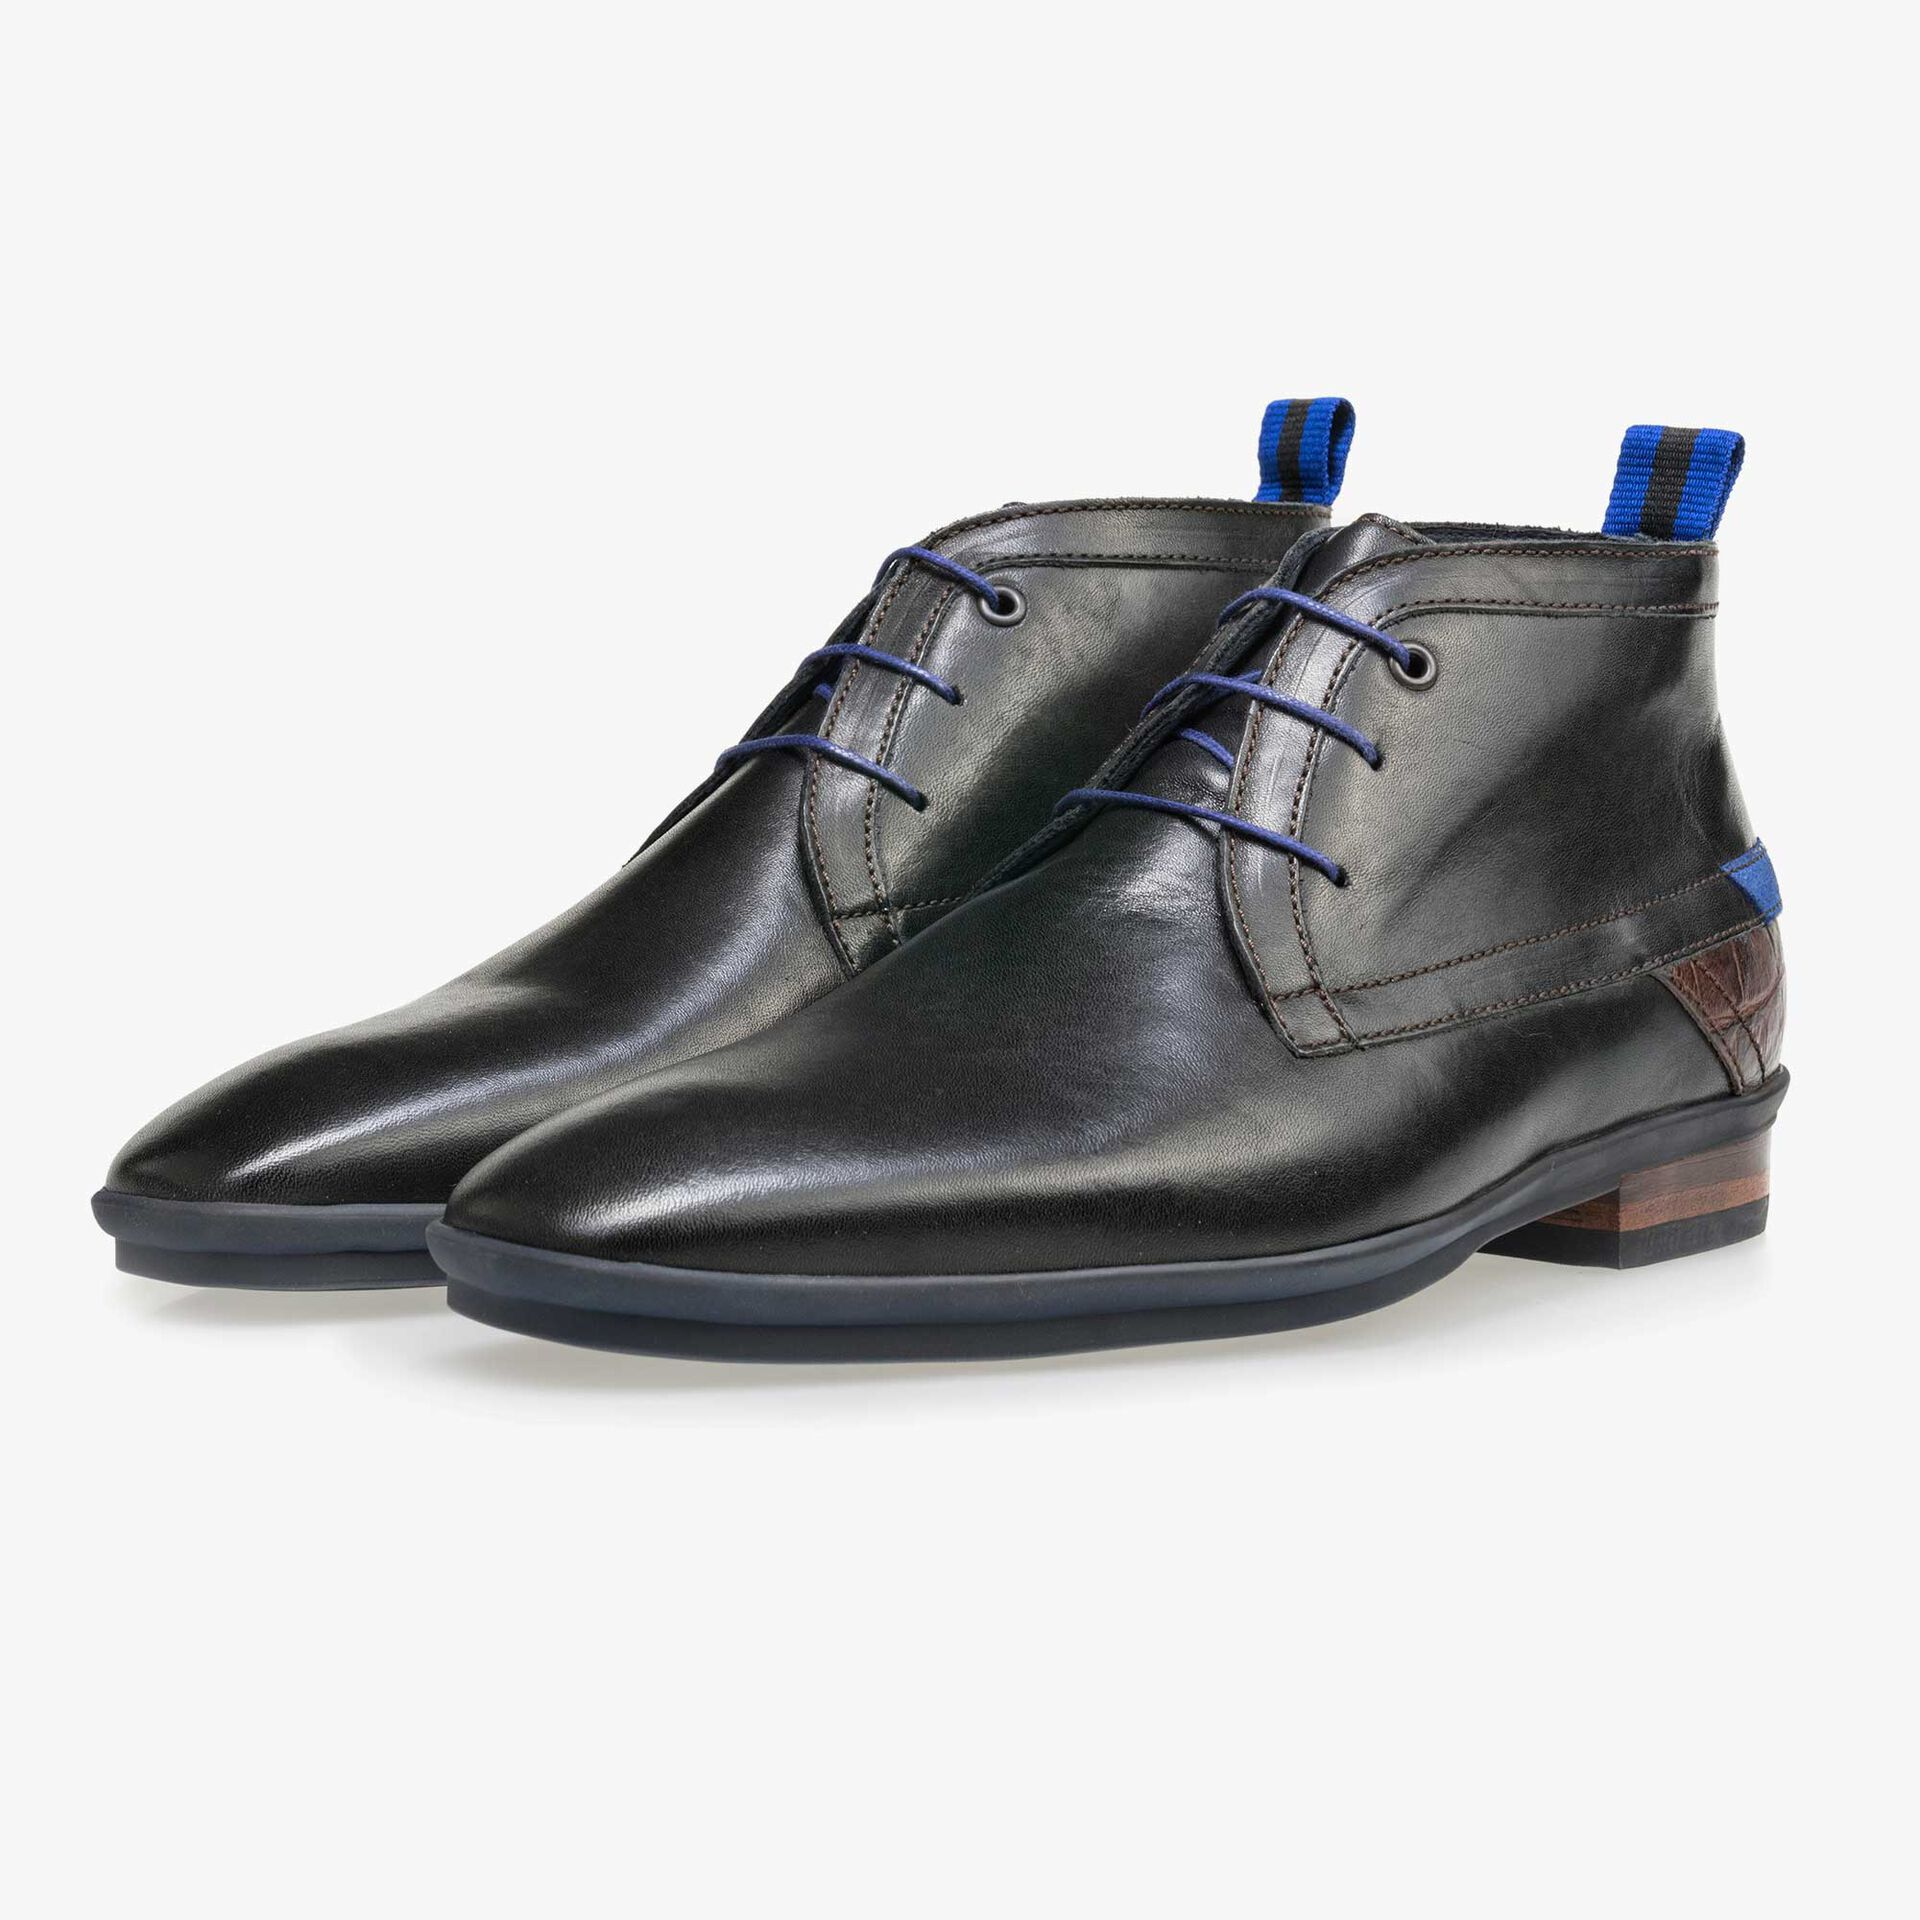 Floris van Bommel black leather men's lace-up boot